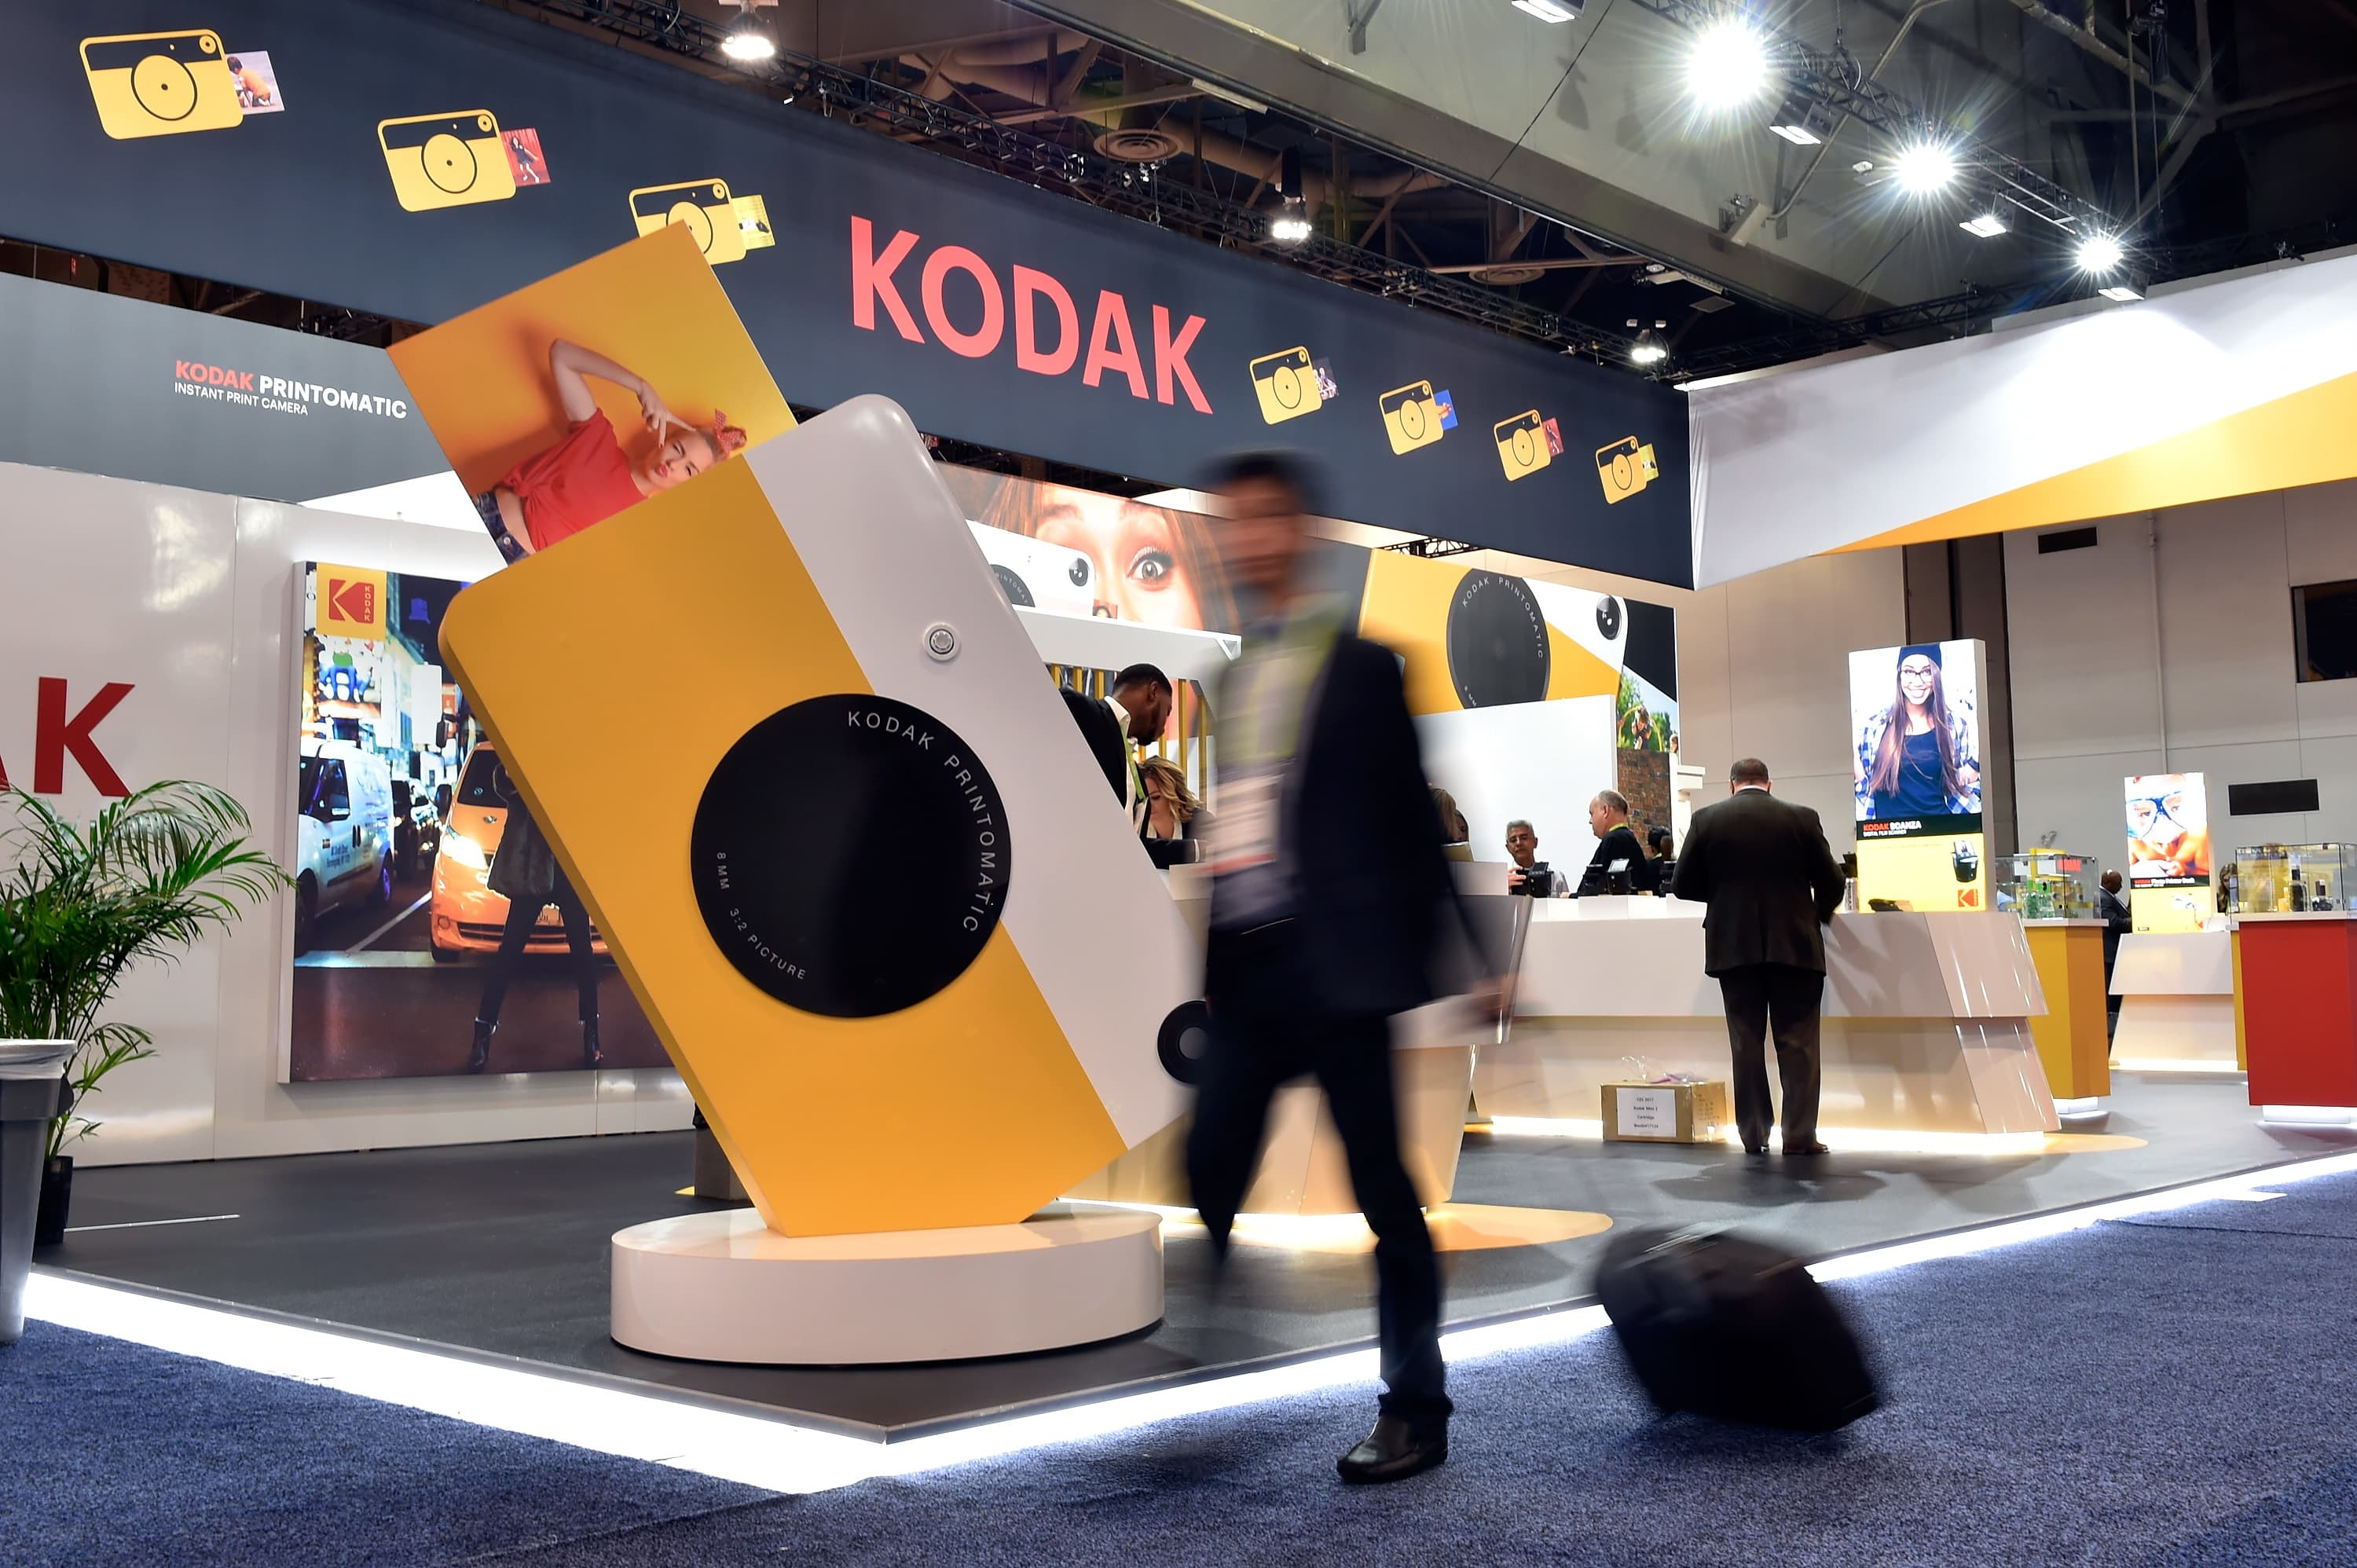 Kodak Shares Tank More Than 40 As Government Loan Is Put On Pause While Allegations Investigated